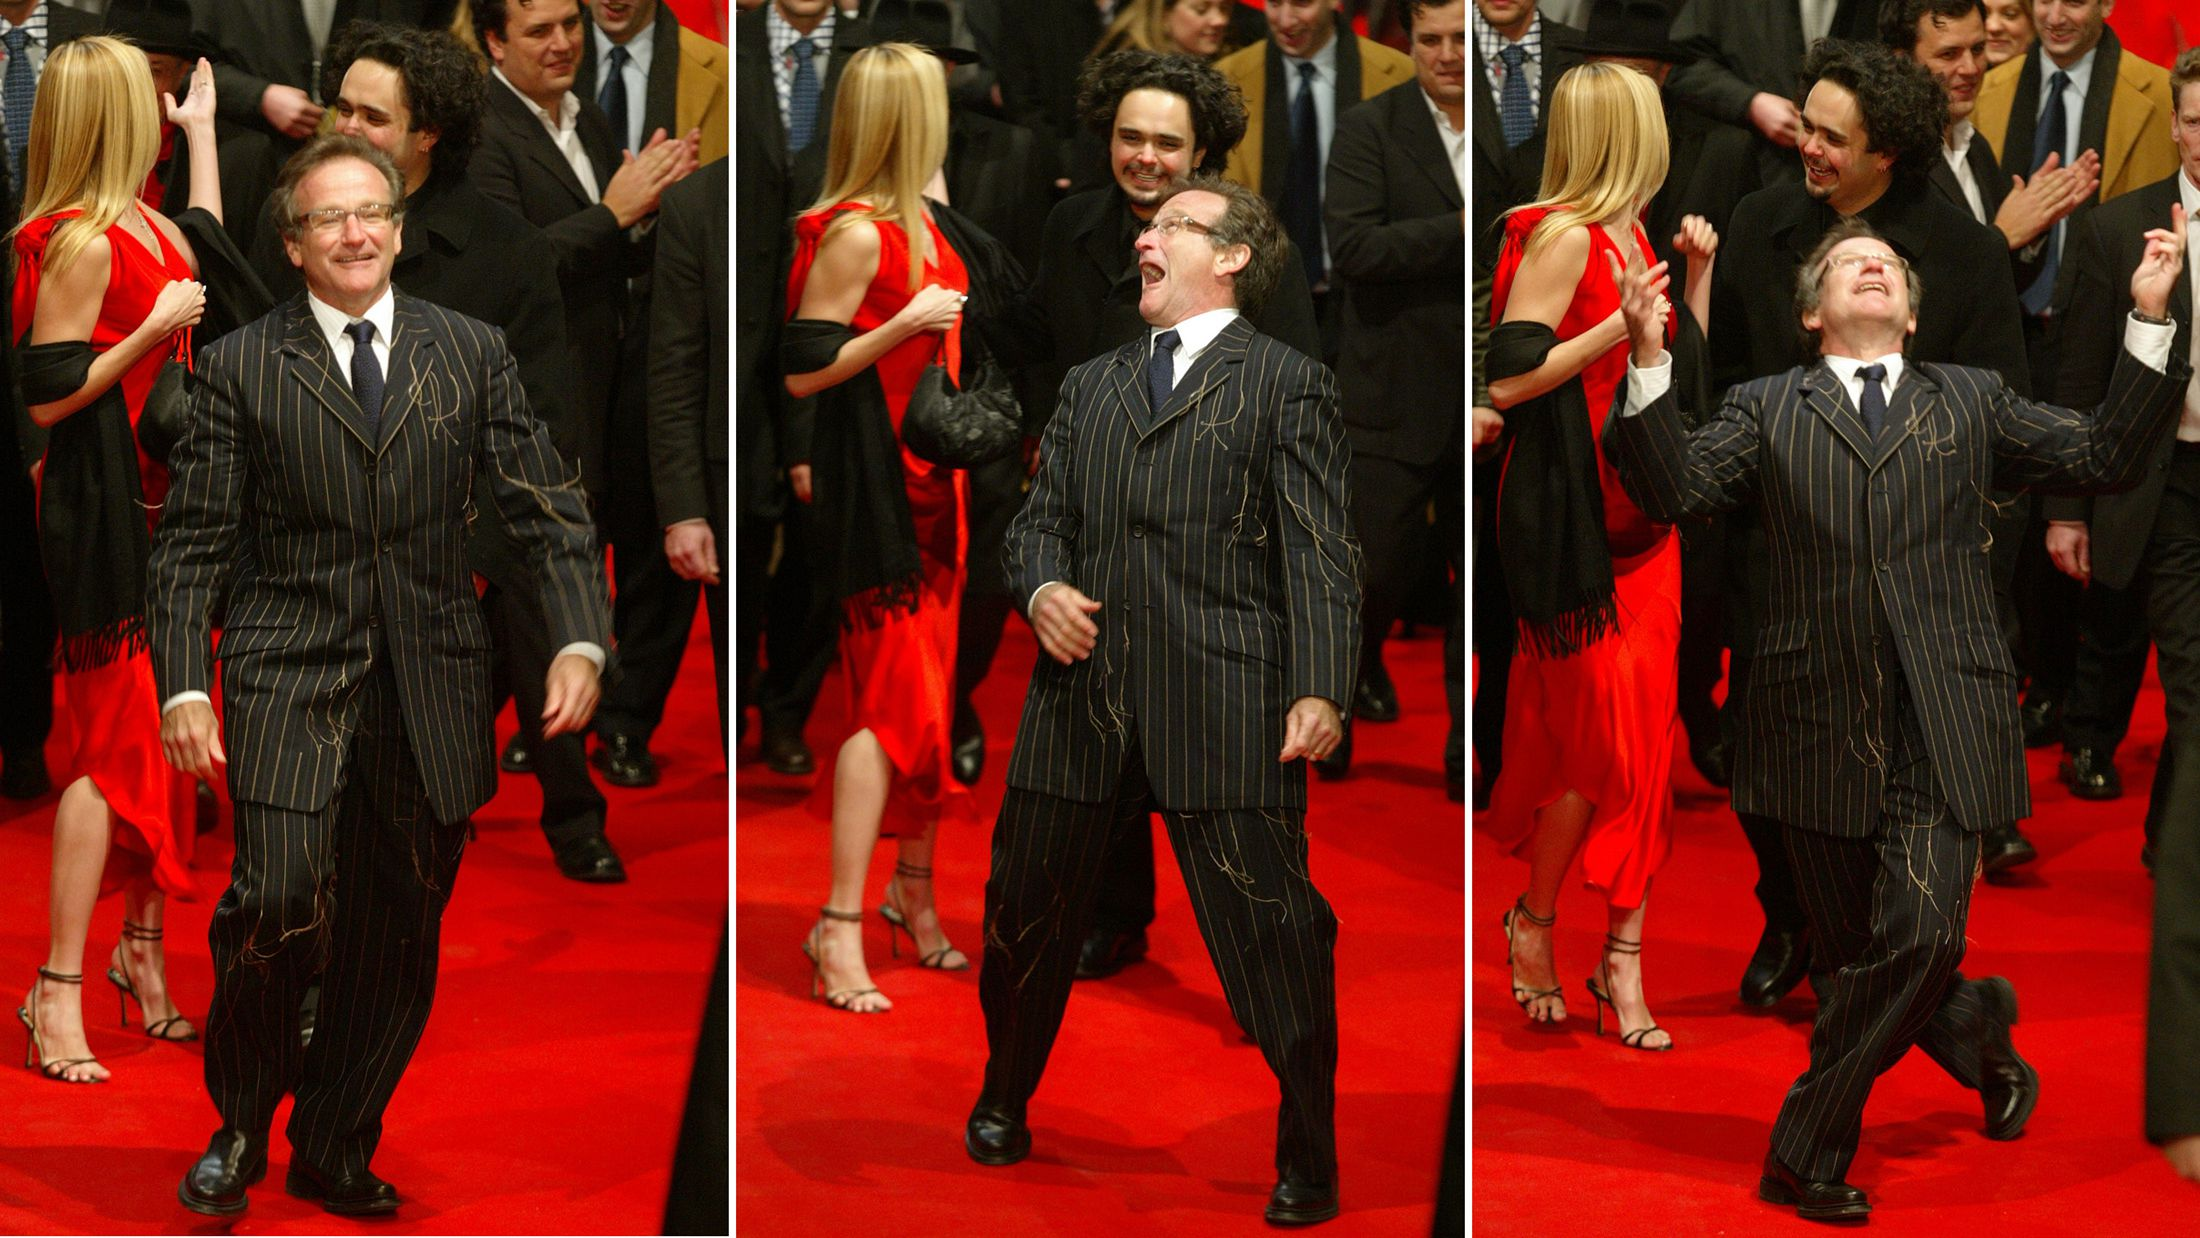 A combined picture shows Jordan director Omar Naim (2nd rowR) and U.S. actress Mira Sorvino (L) arriving behind U.S. actor Robin Williams (front) for the screening of their new movie 'The Final Cut' as part of the festival competition at the 54th Berlinale International Film Festival in Berlin February 11, 2004.